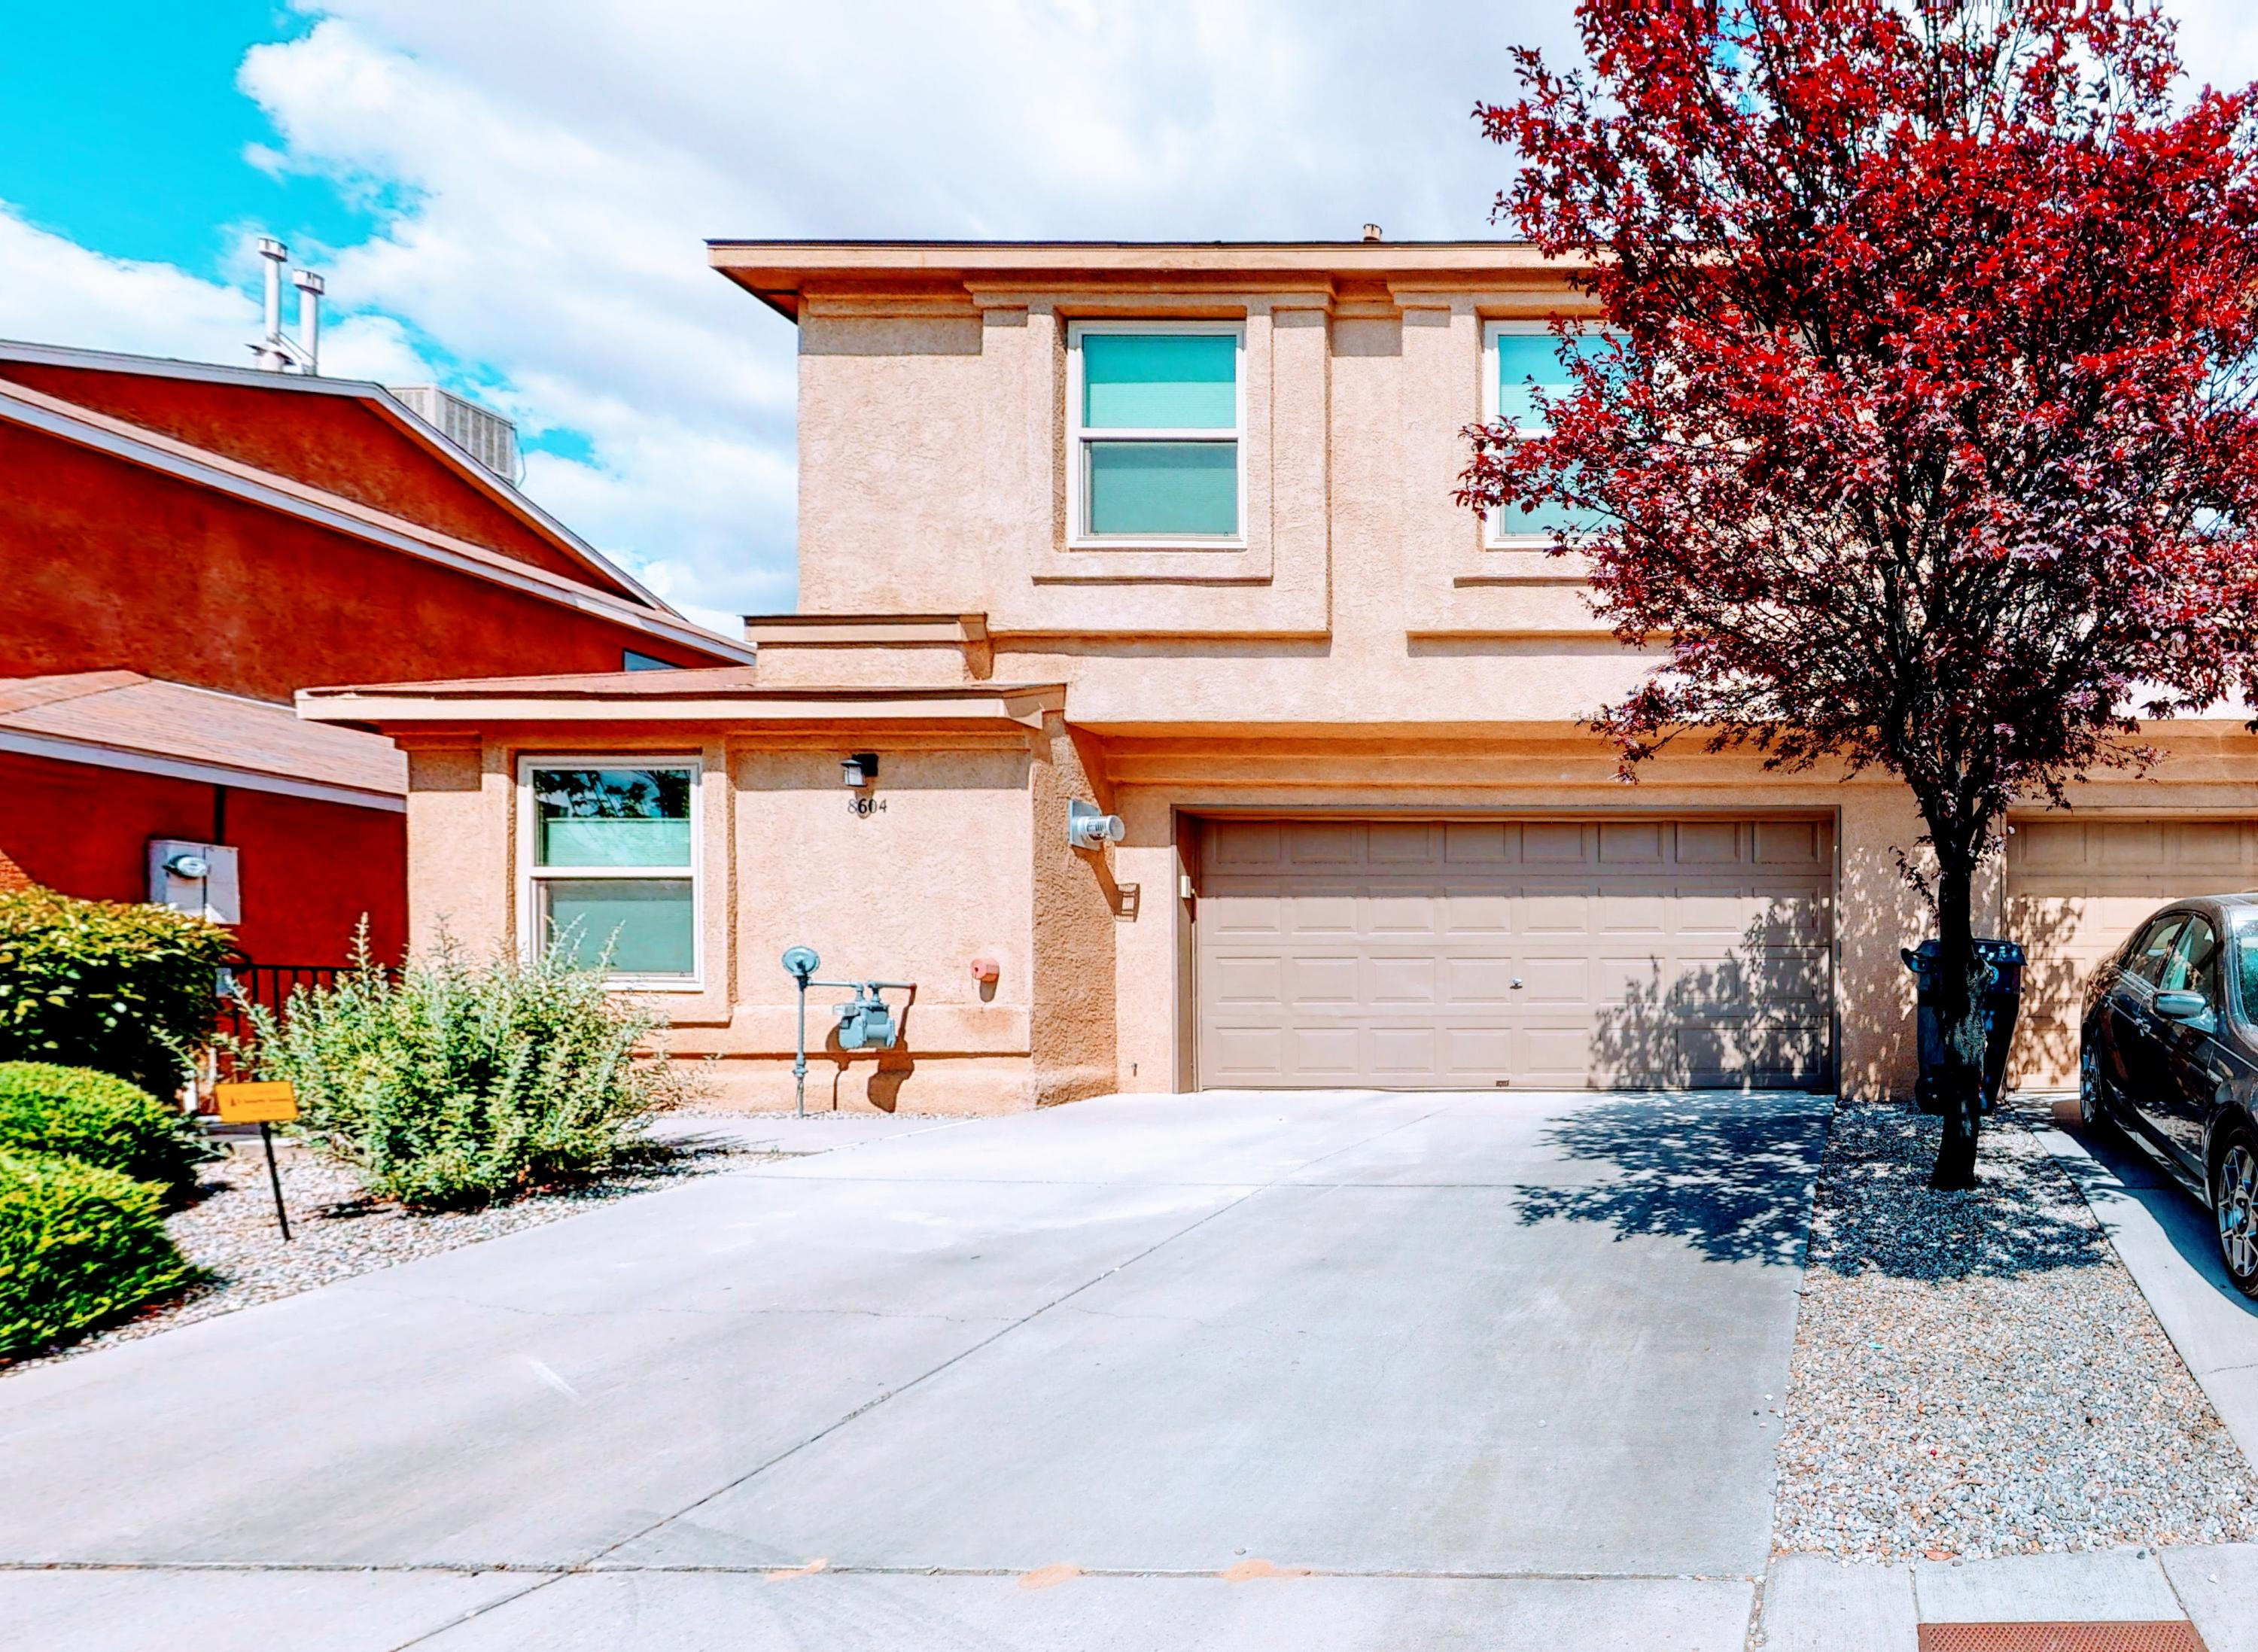 Beautiful Well Designed And Built Townhome. Amenities Are Plentiful- An Open Floorplan with Spacious Cabinetry, including Updated Refrigerated Air; Updated French Doors that open to patio xeriscaped backyard.Cozy Gas Log Fireplace.Nice sized rooms Nice size master with 2 closets one is a walk in.This  Townhome Located In The Very Desirable La Cueva High School District in immaculate condition.